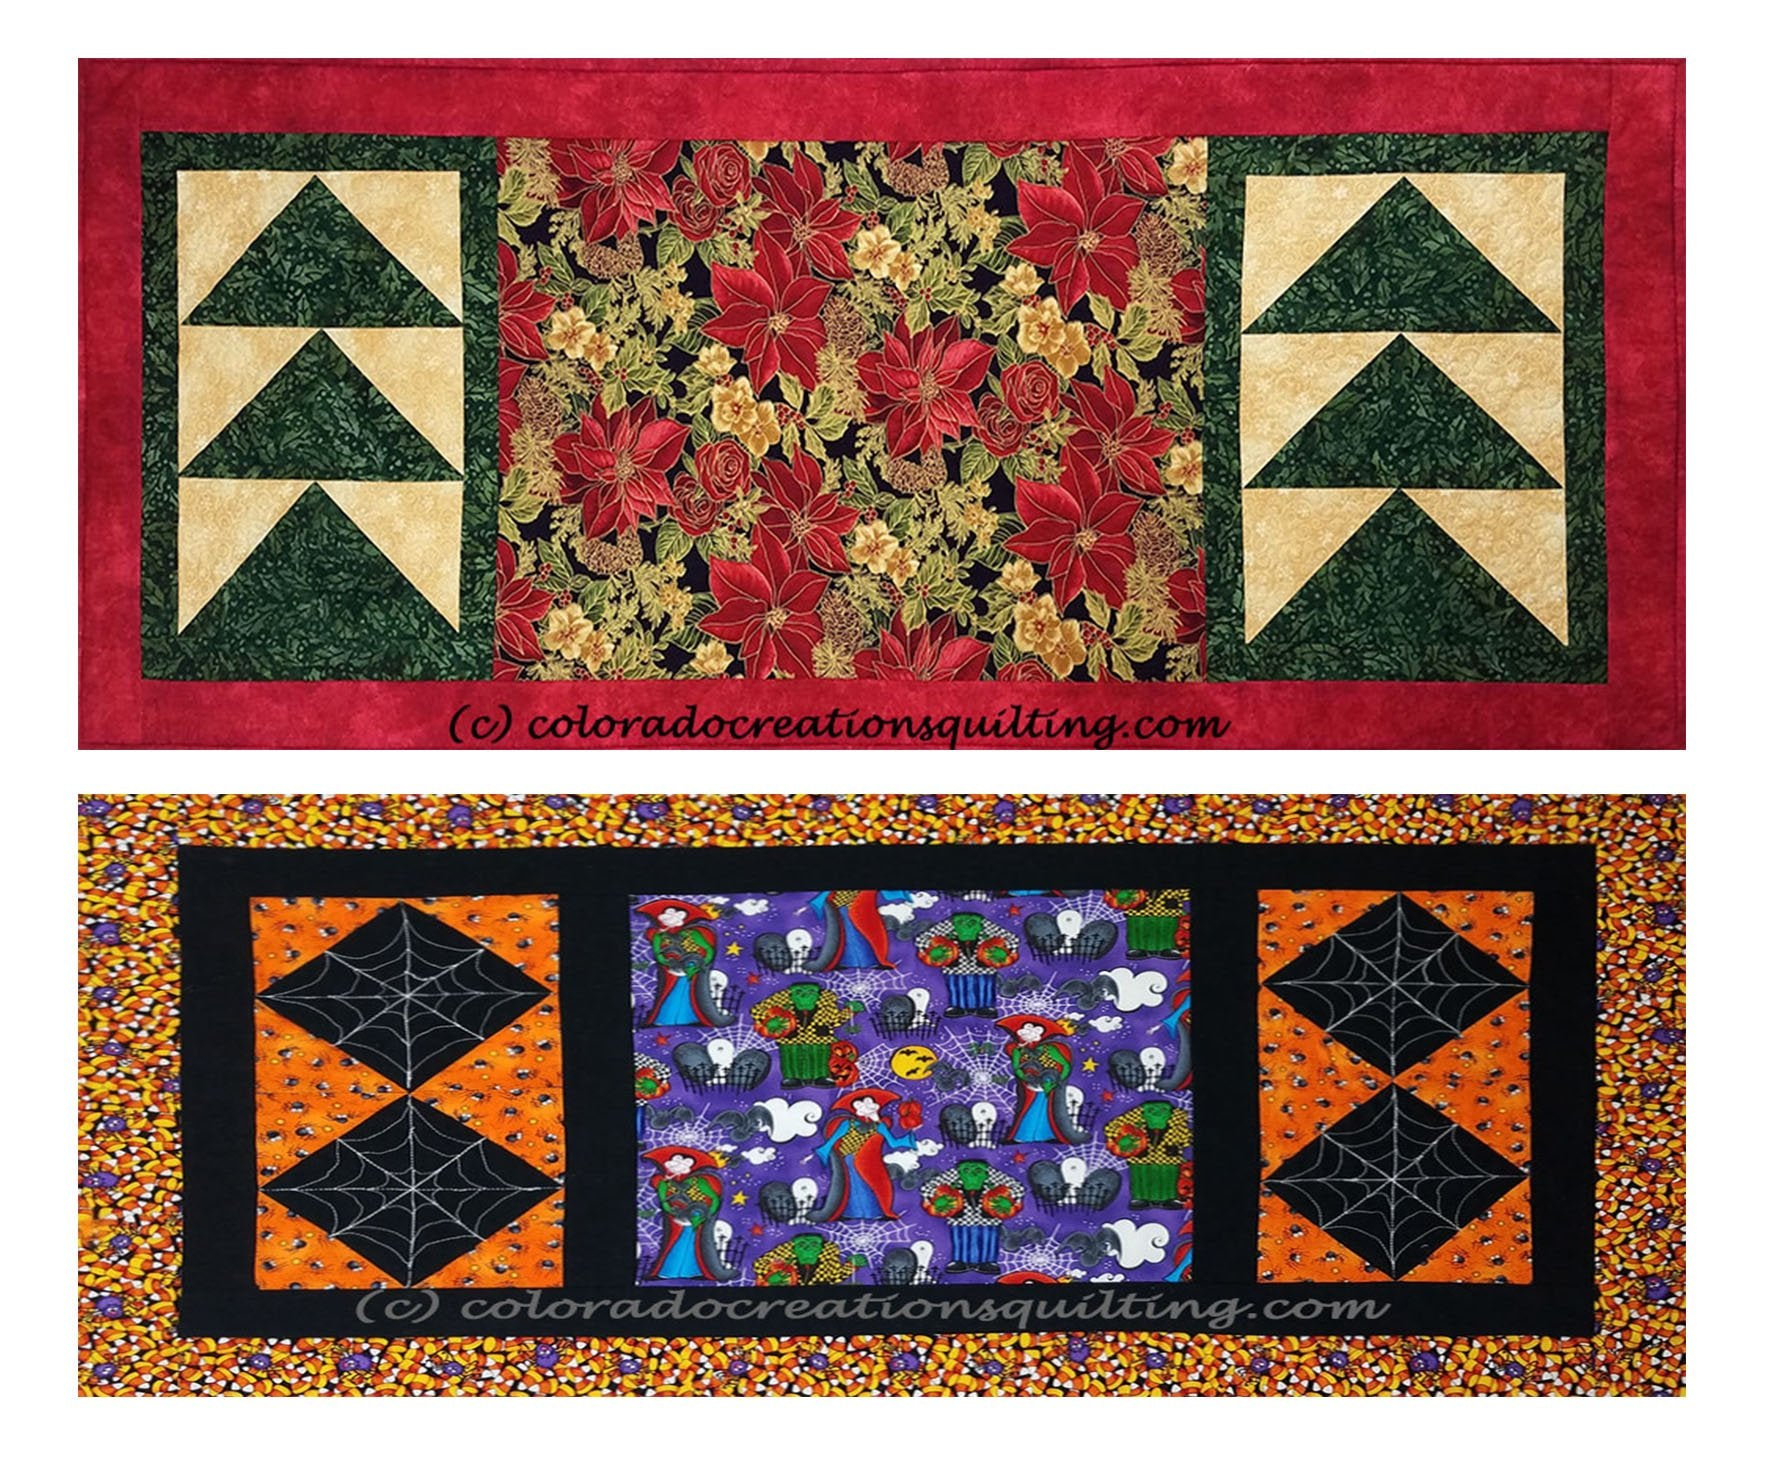 Change of Seasons quilt table runners: 1st has red pointsettias with pieced trees and 2nd has Halloween fabric with spiderwebs